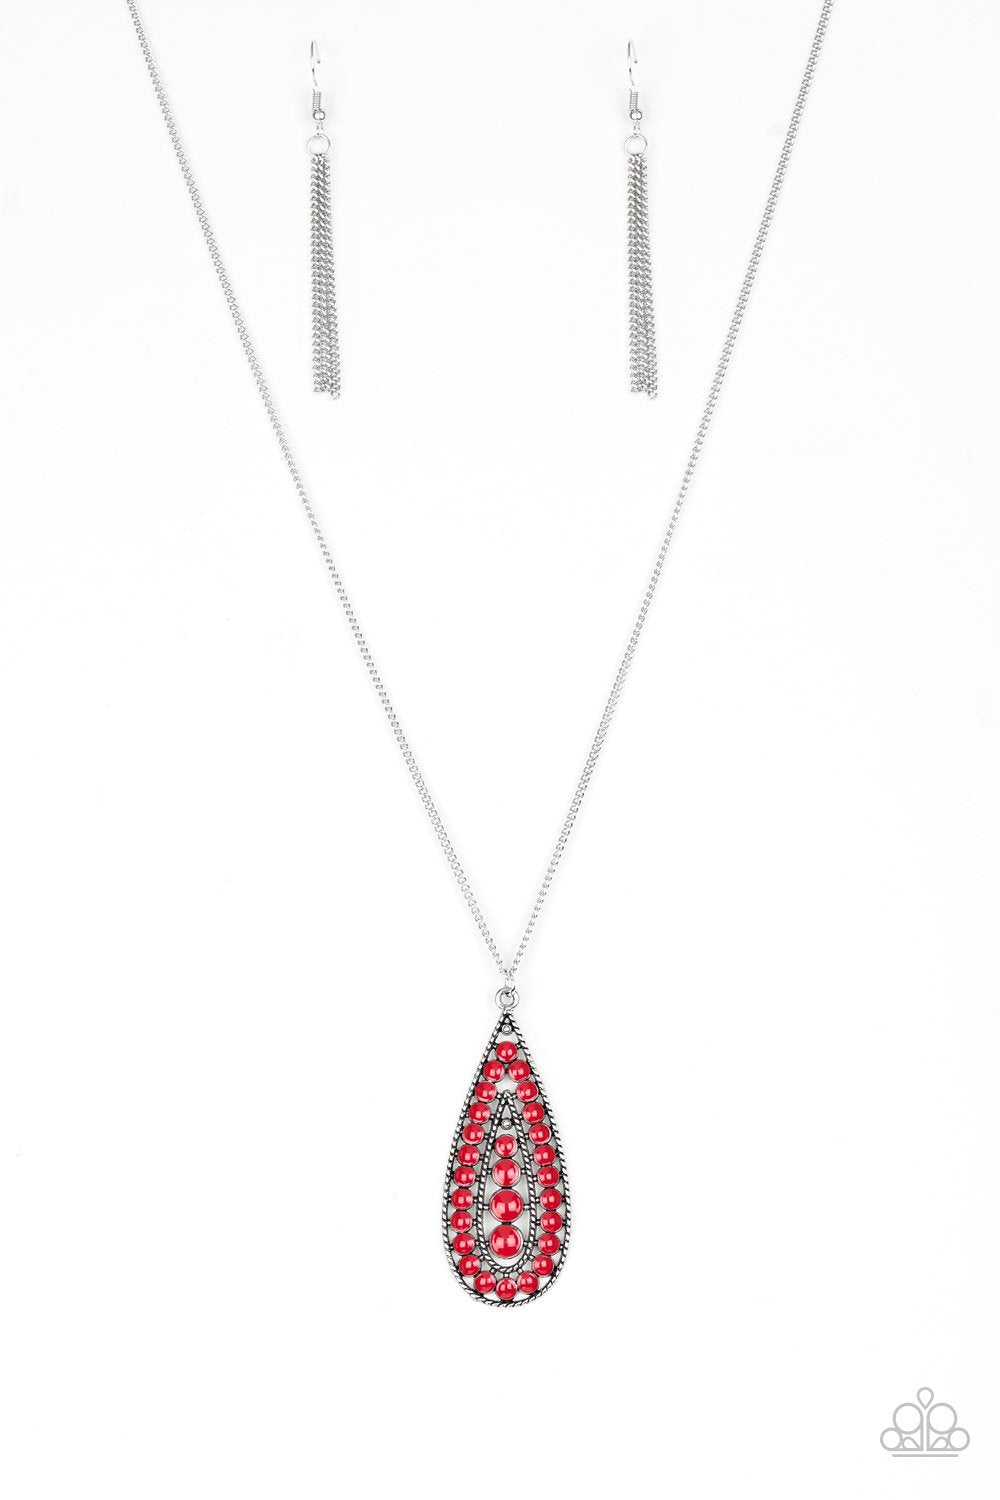 Tiki Tease - Red Pendant Necklace - The Paparazzi Fox